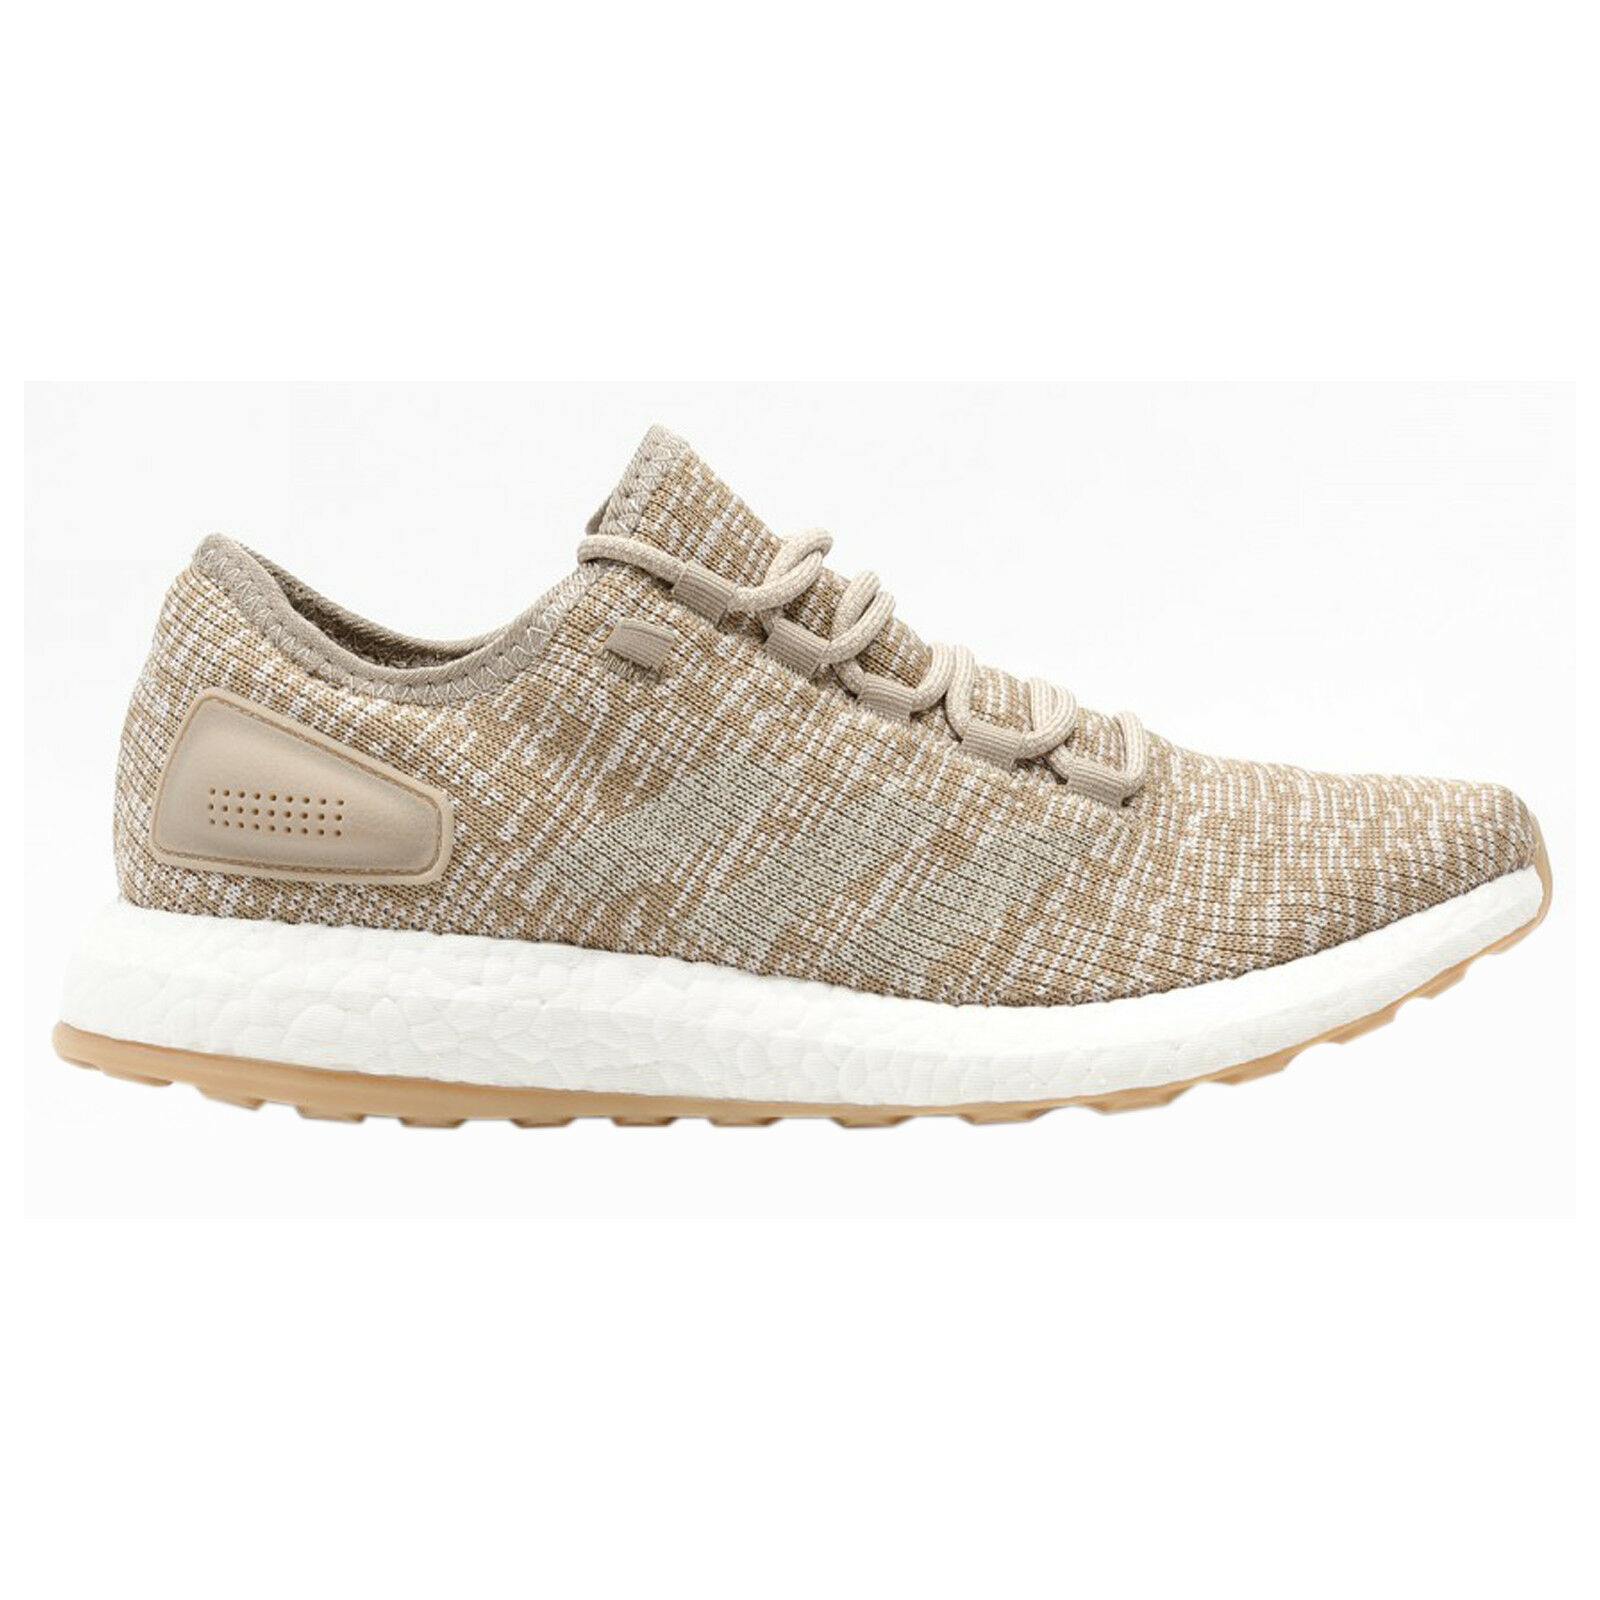 Adidas PureBOOST Mens Sneakers S81992 - Khaki, White (NEW) Lists @  150